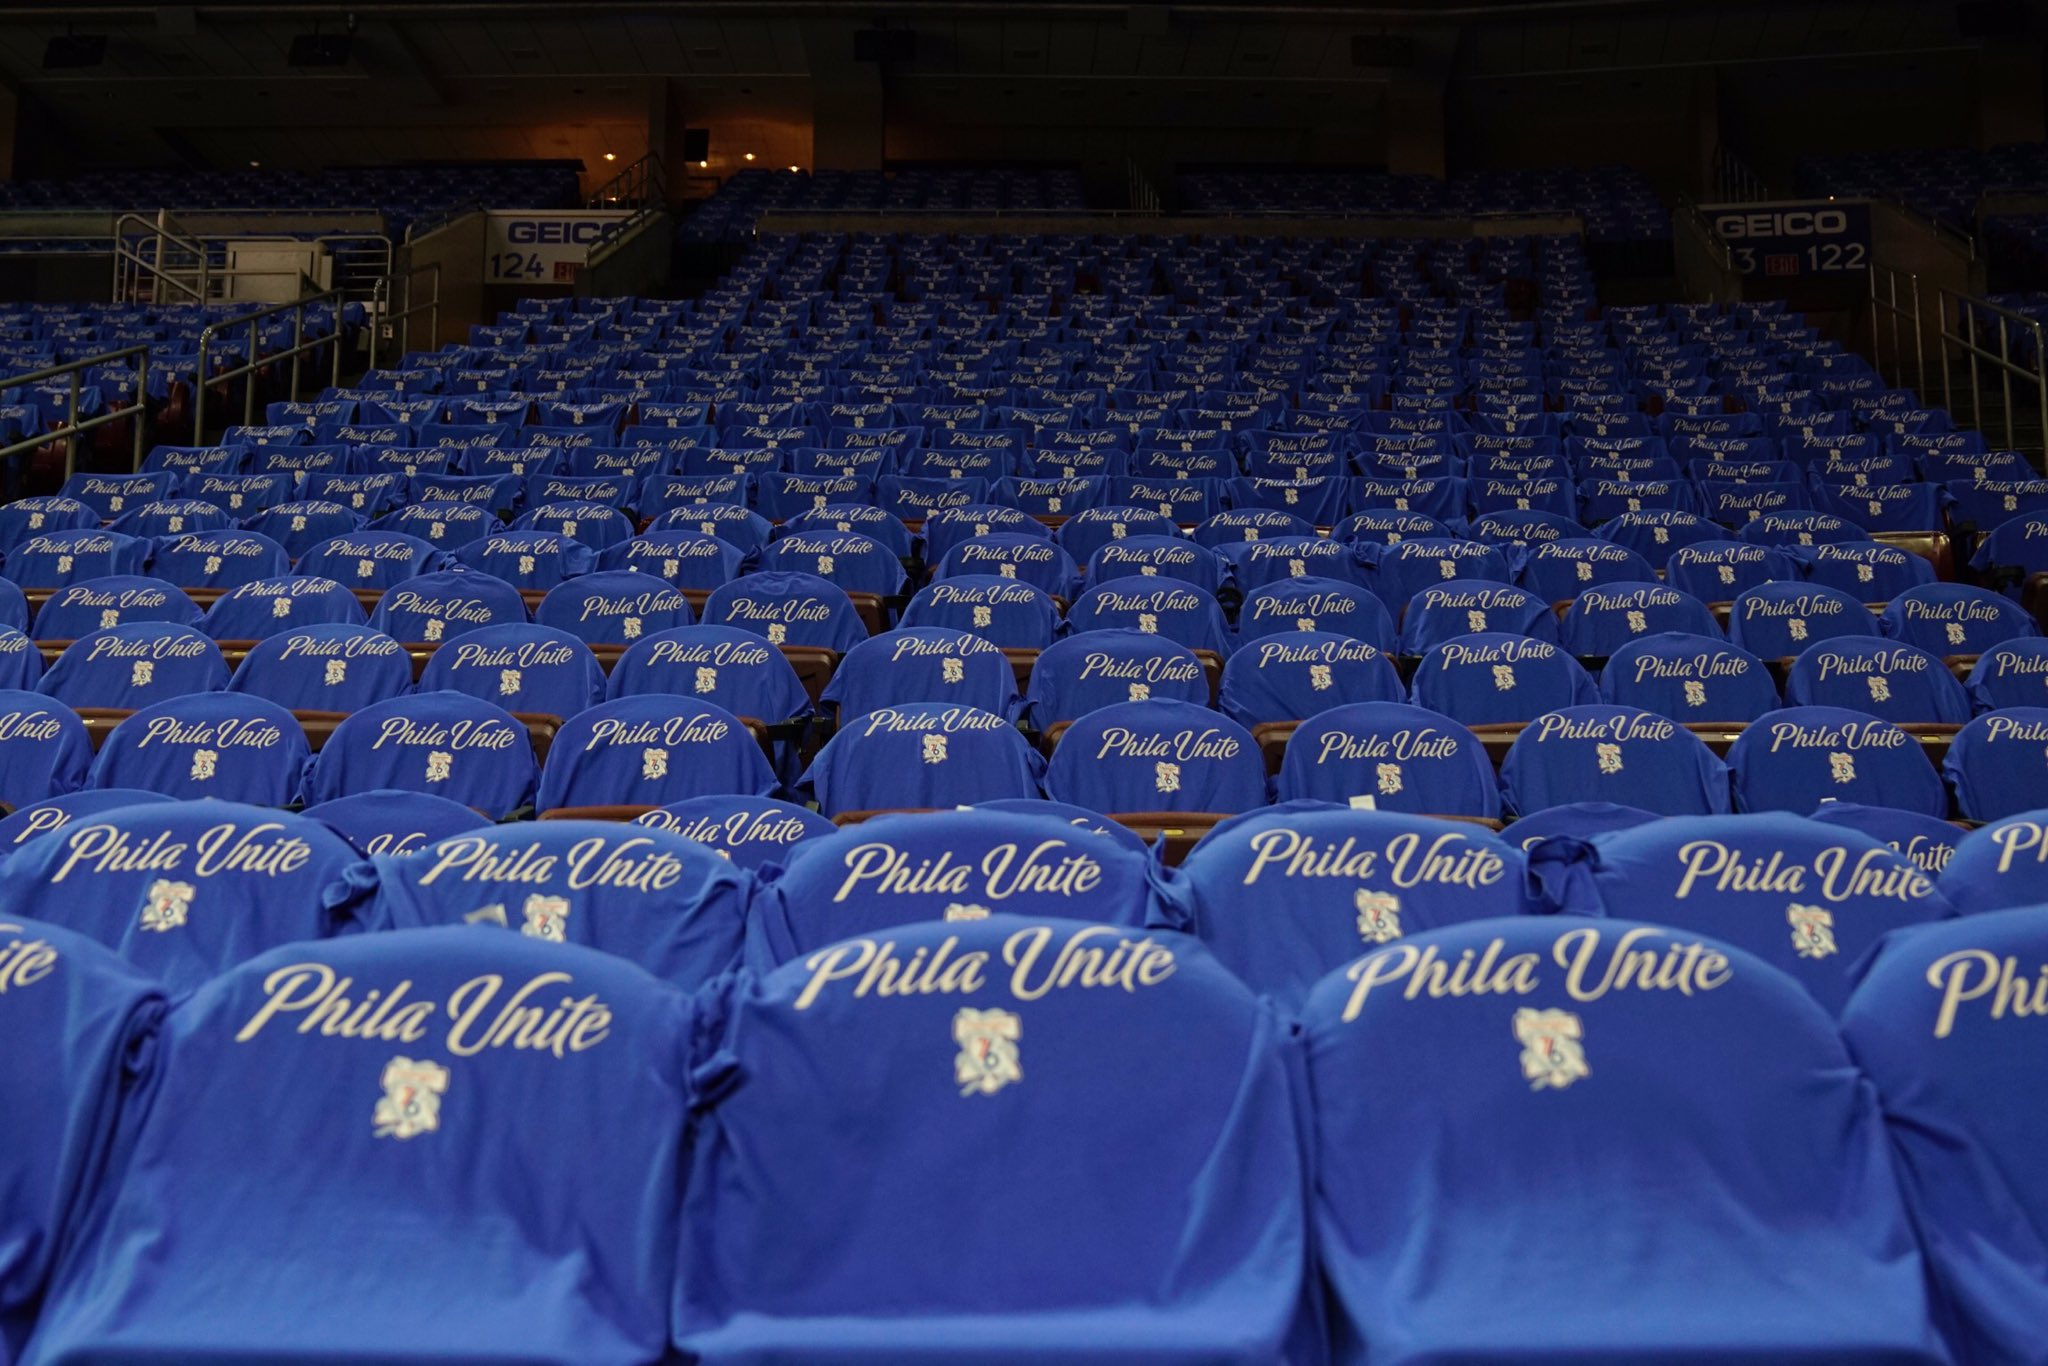 Shirts on every seat, courtesy of @RothmanOrtho & @TJUHospital.  #PhilaUnite x #HereTheyCome https://t.co/jFgp4kpevz